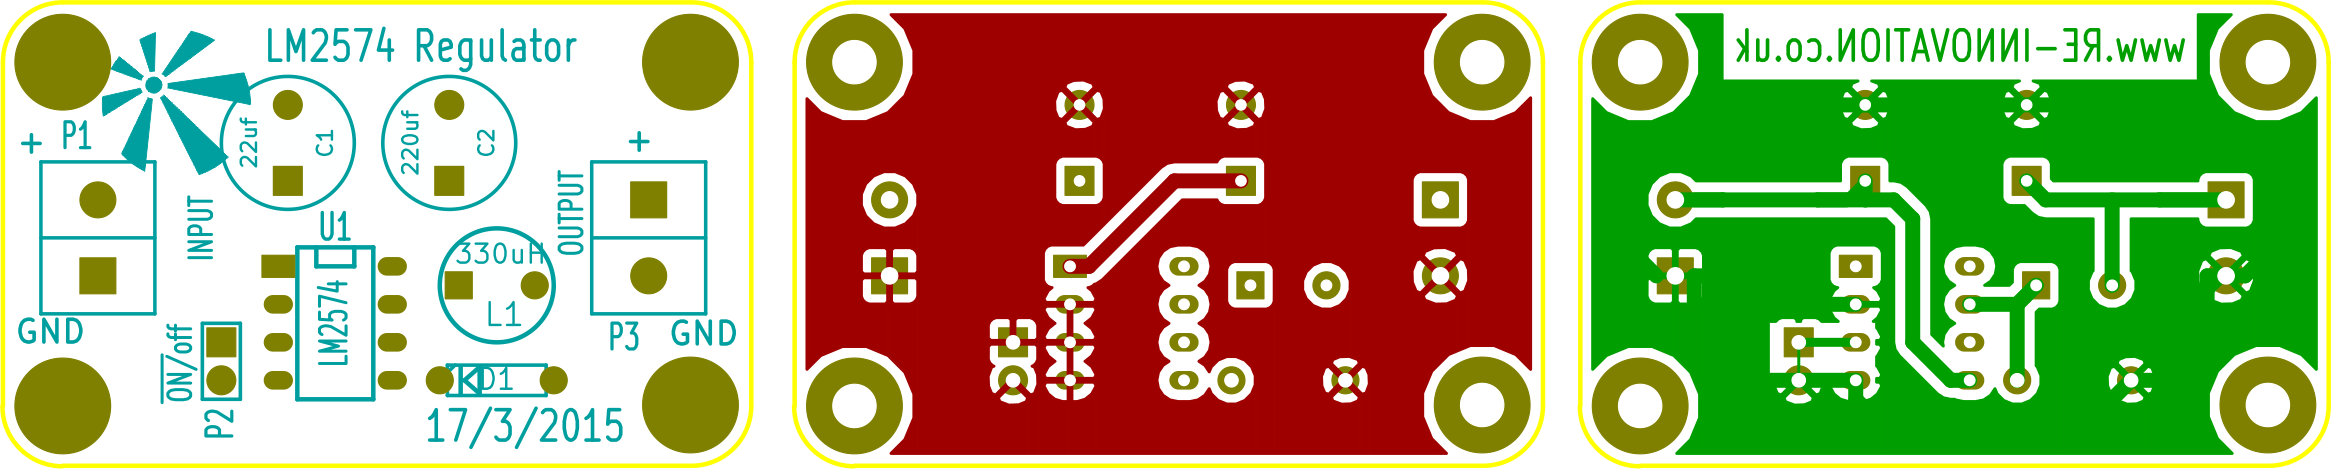 Lm2574 Voltage Regulator Kit Renewable Energy Innovation Our Schematic Kicad Pcb Files